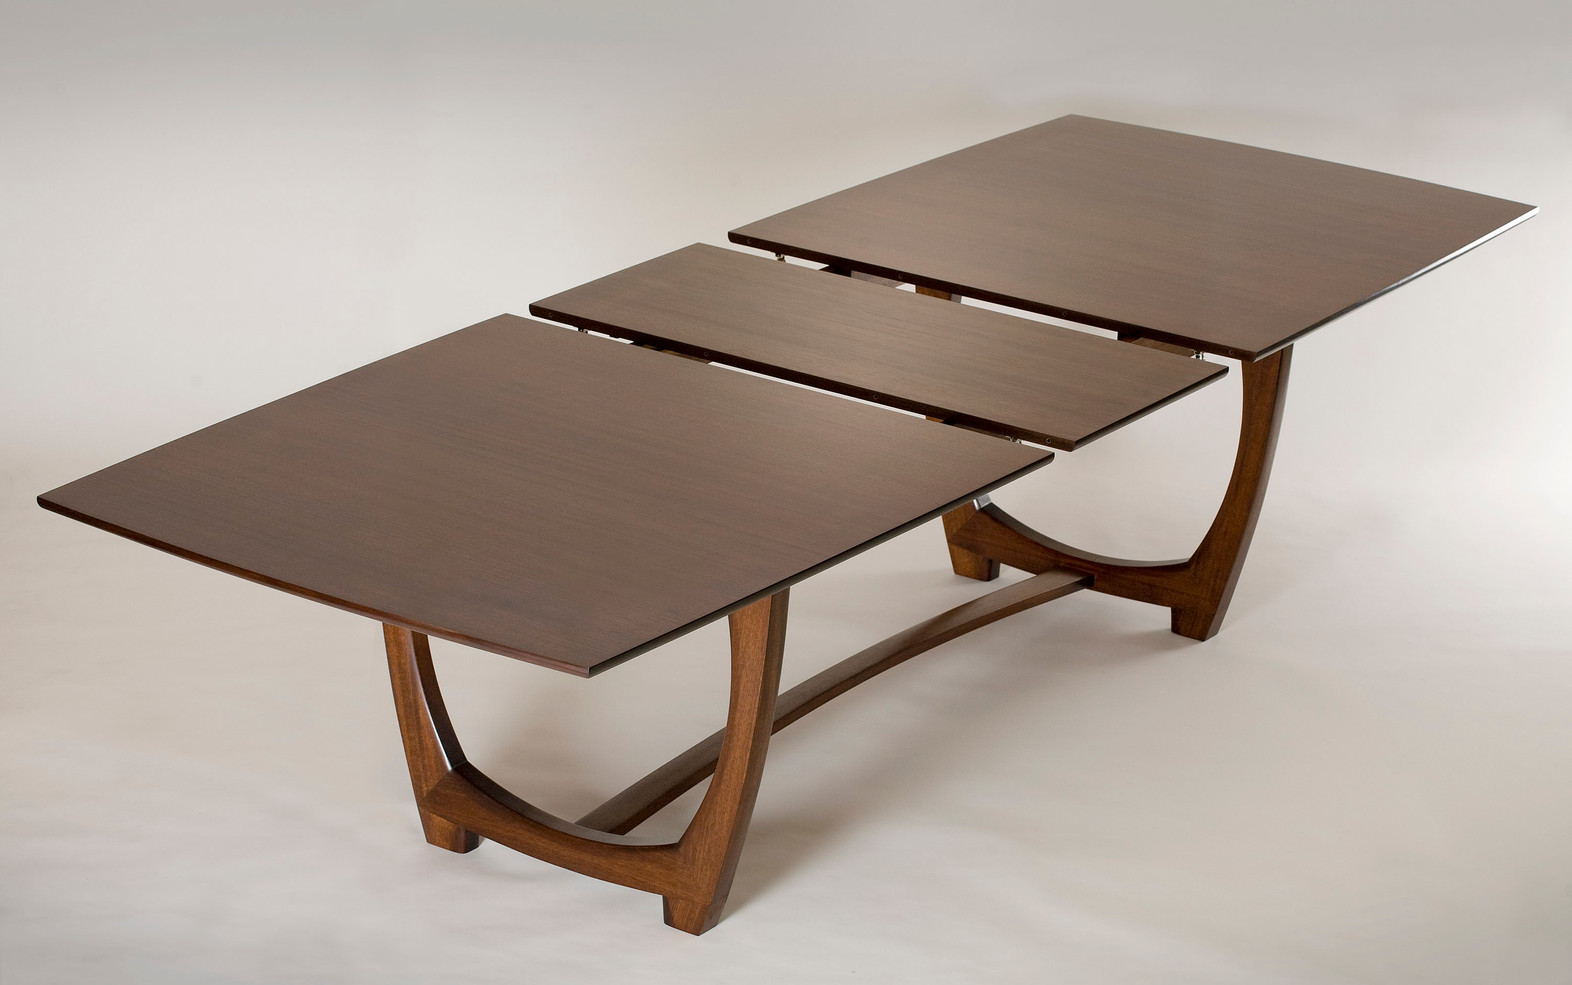 wix_mahogany_expanding_dining_table 2.jp